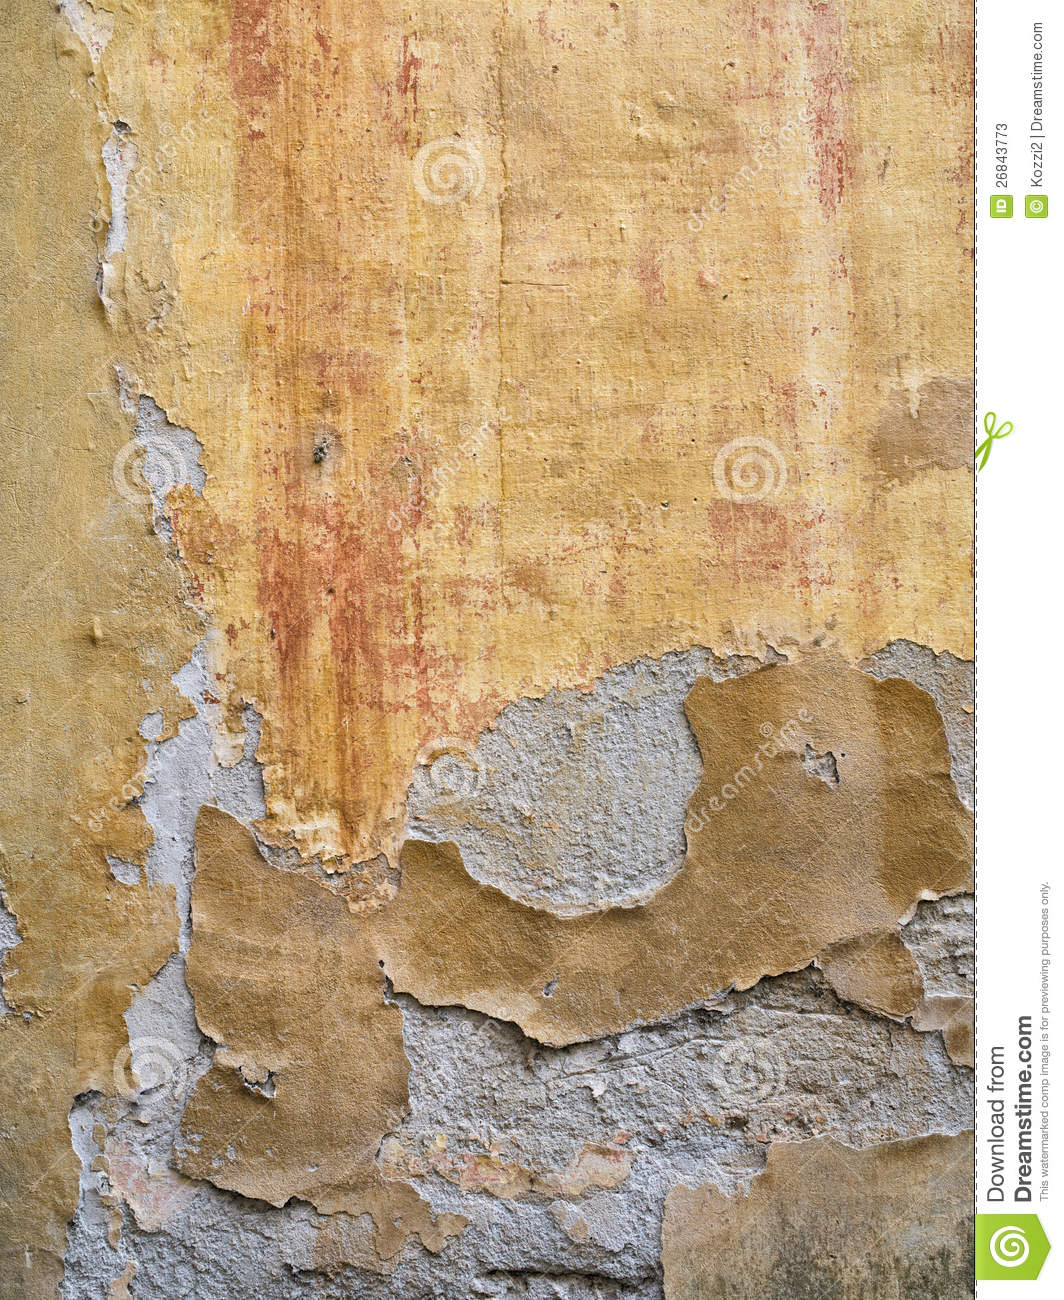 Remove Peeling Paint Bathroom Wall: Old Paint Peeling From Wall Texture Background Royalty